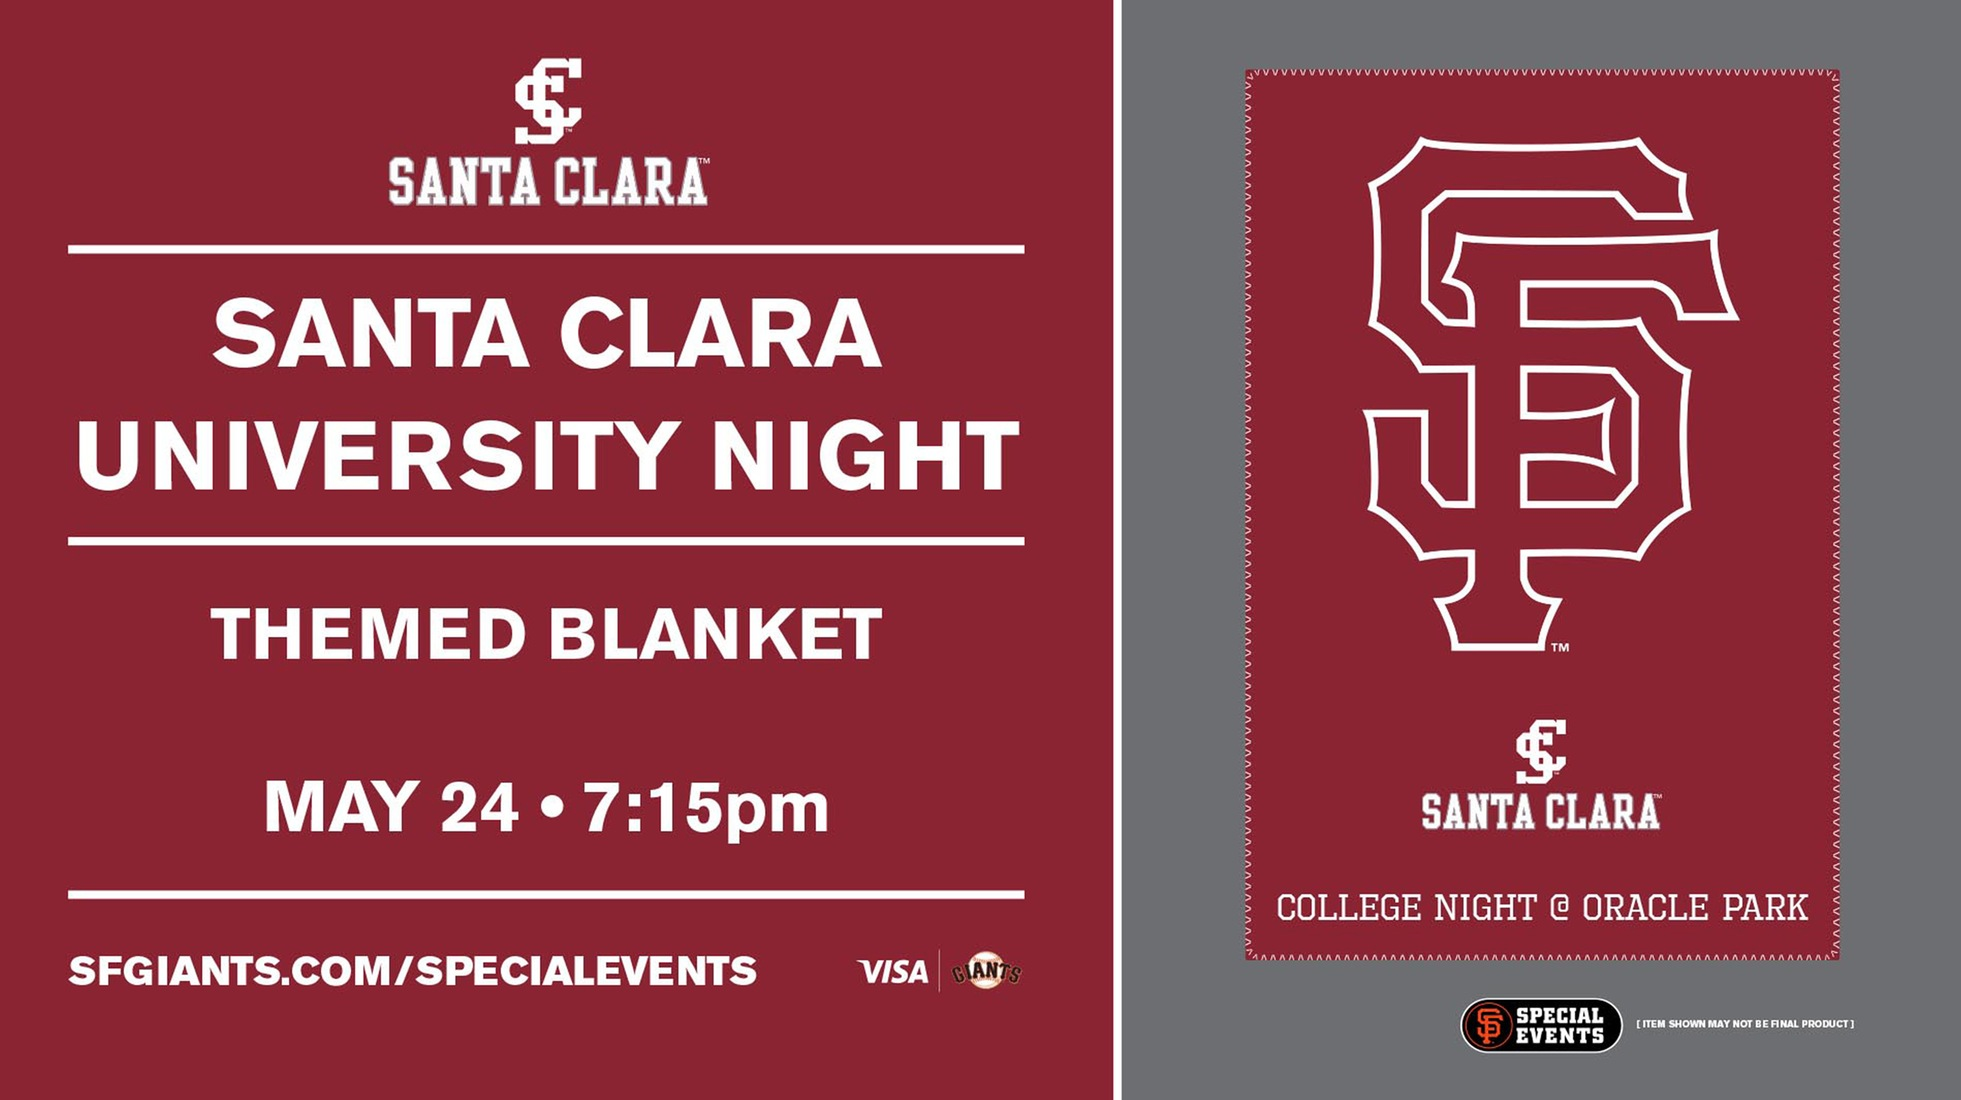 College Night with the San Francisco Giants Set for May 24